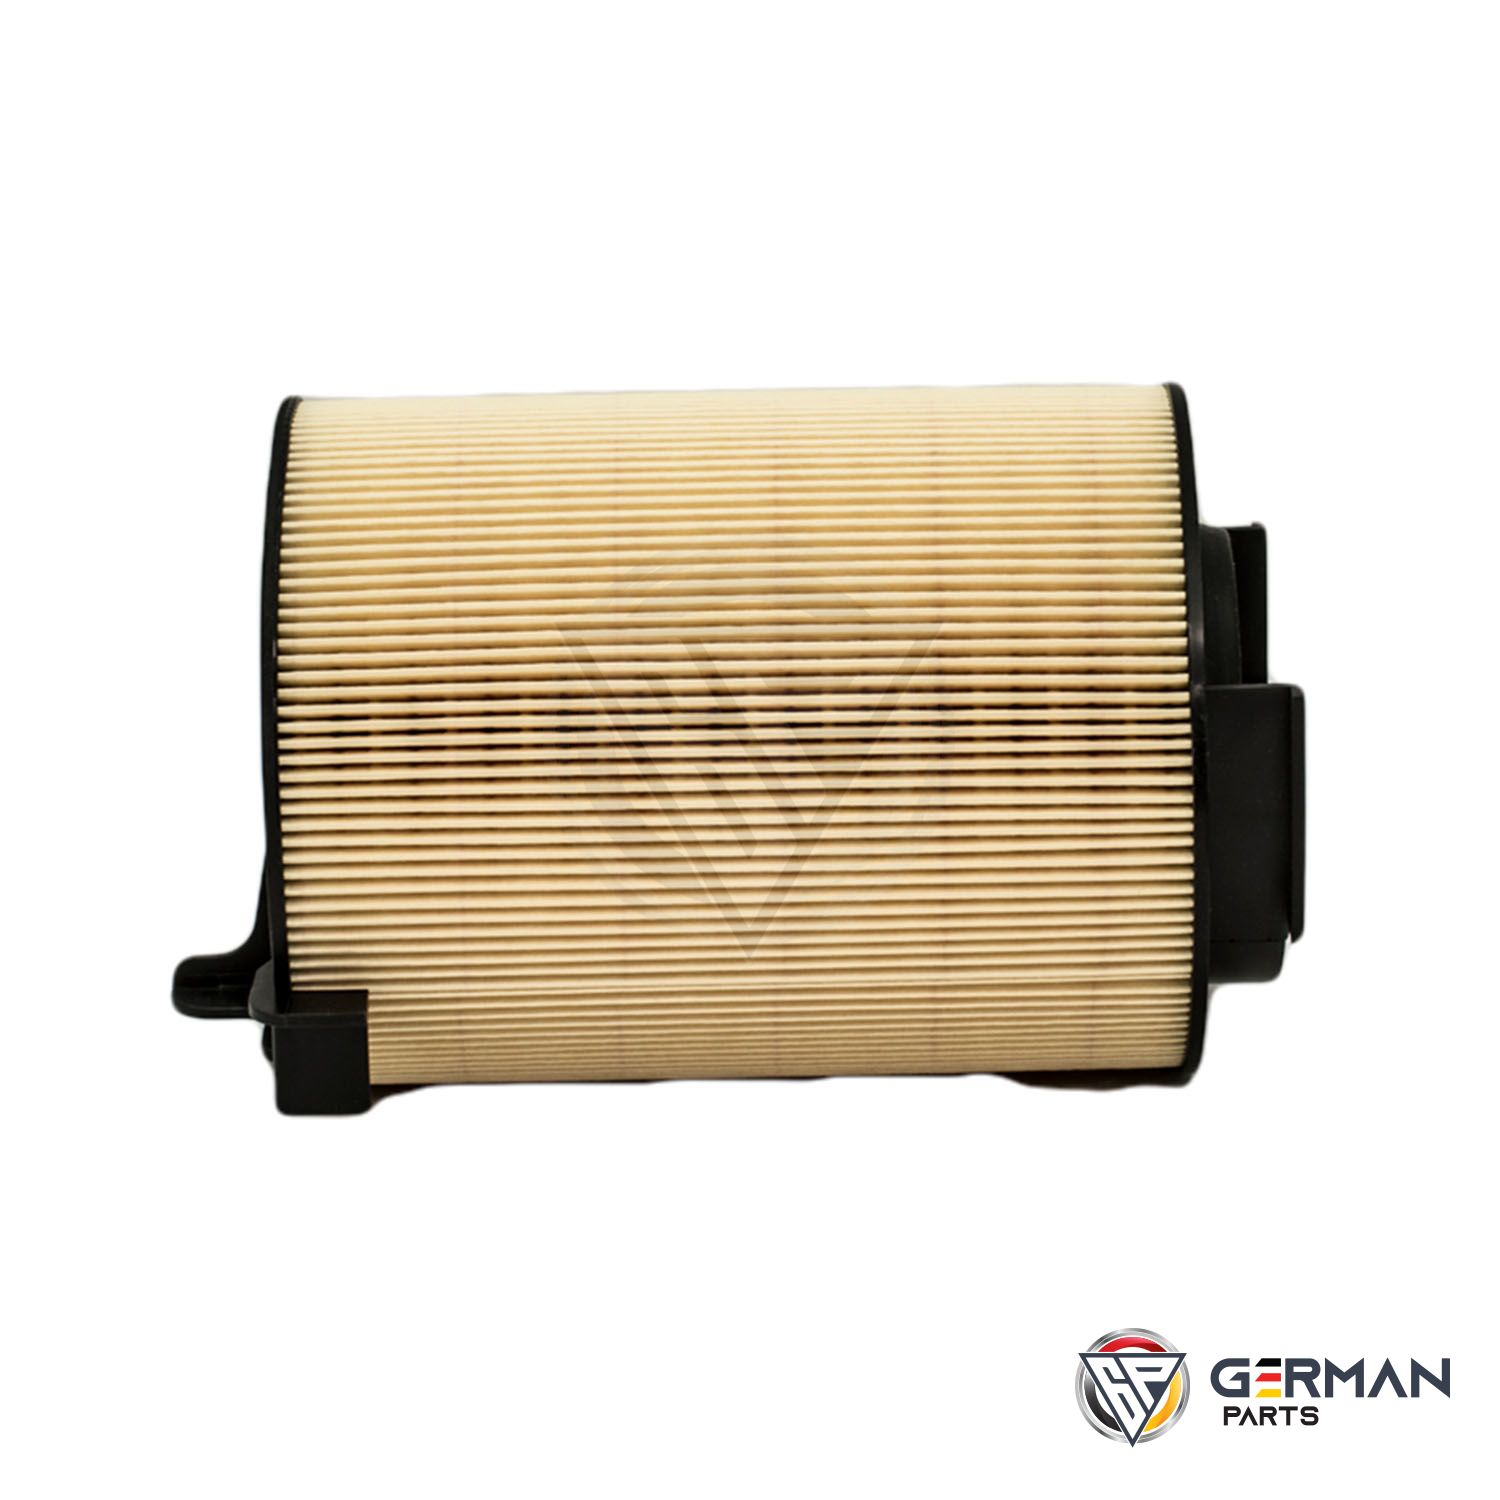 Buy Audi Volkswagen Air Filter 1F0129620 - German Parts